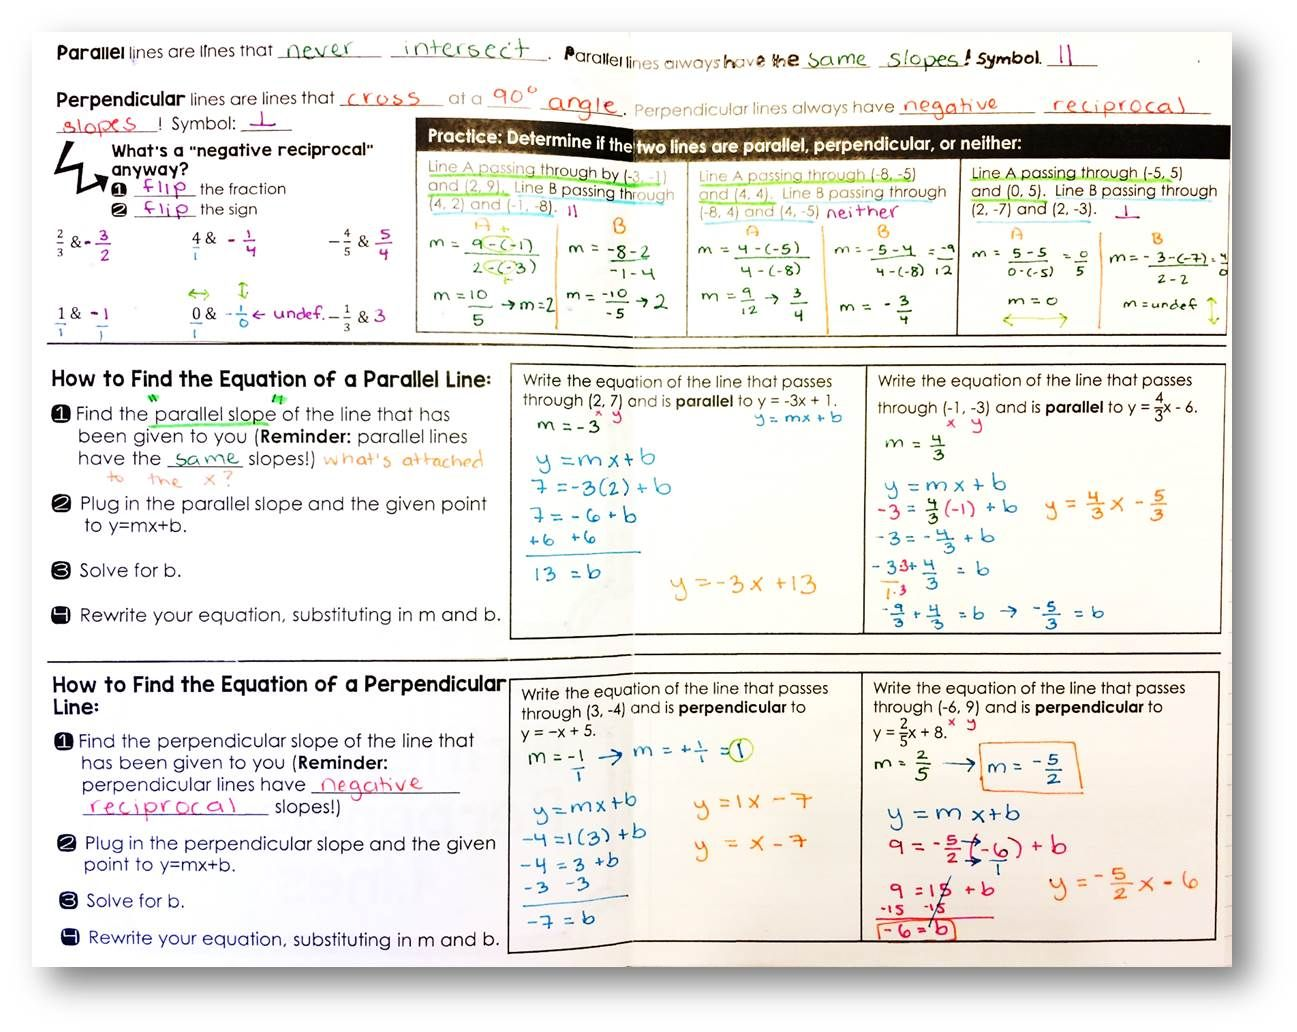 Writing Equations For Parallel And Perpendicular Lines Foldable Writing Equations Solving Quadratic Equations Graphing Linear Equations Writing equations of lines worksheets